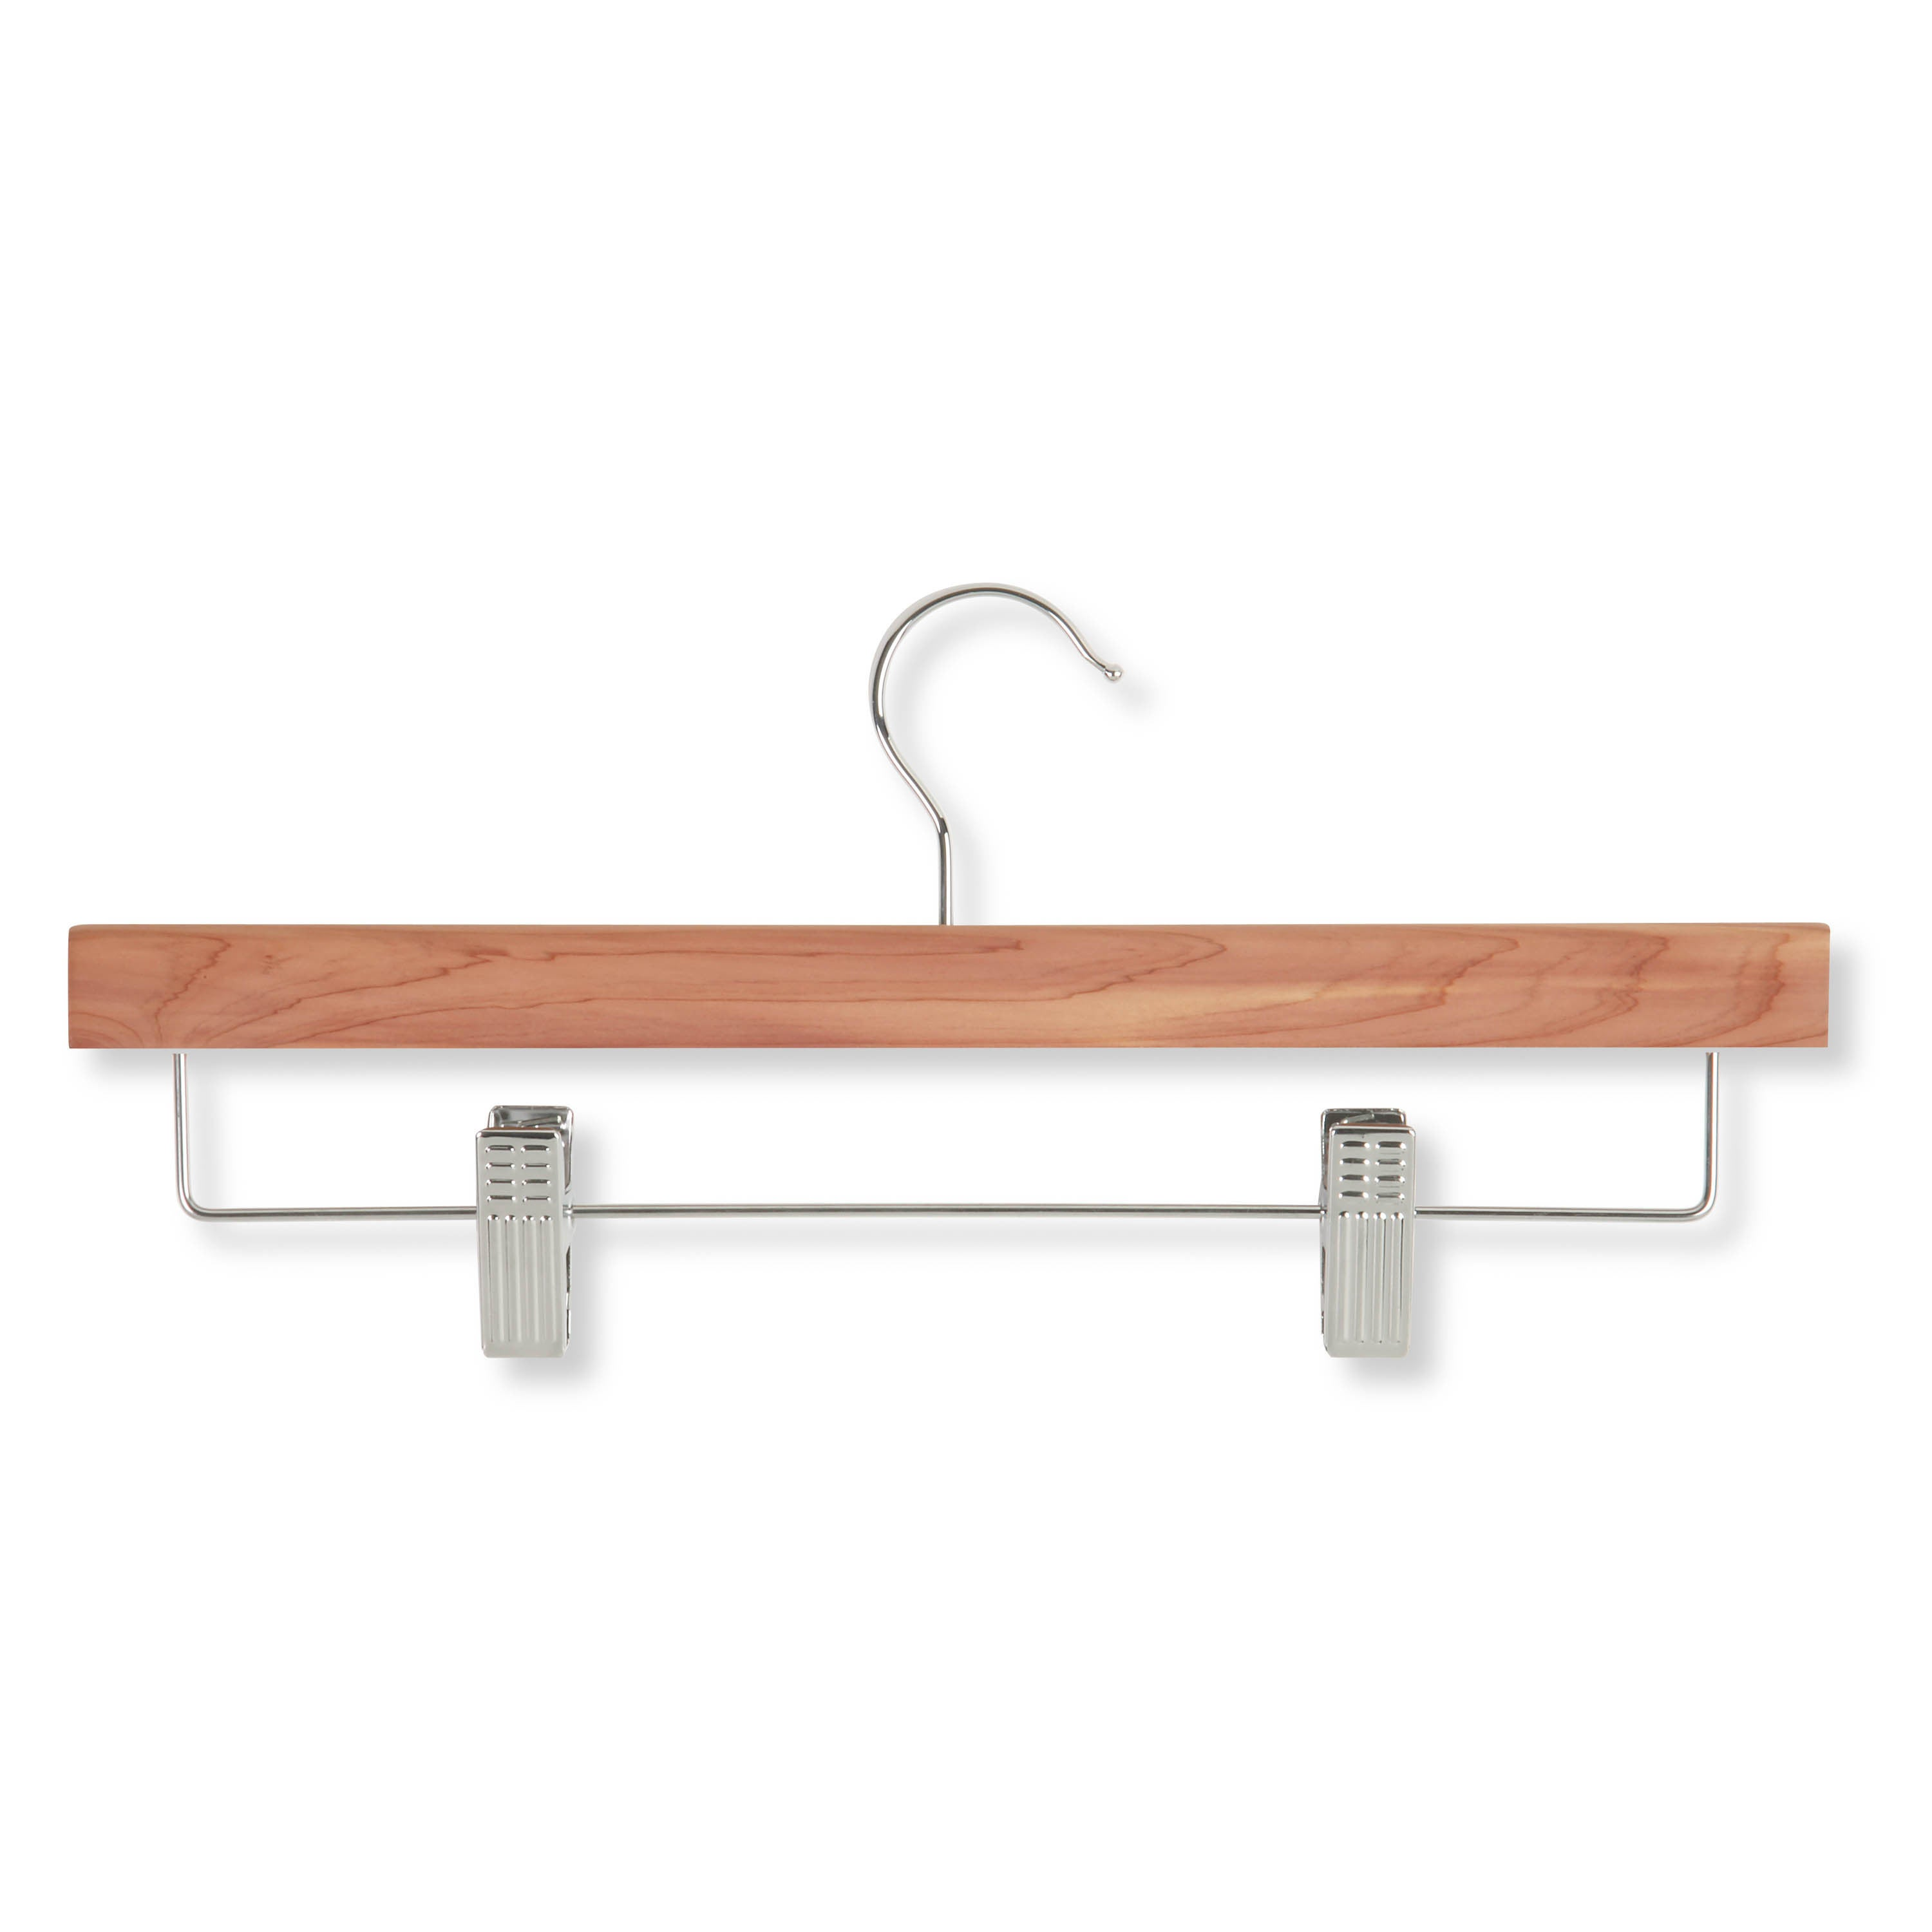 Honey-Can-Do HNG-01535 Cedar Skirt/ Pant Hangers With Cli...